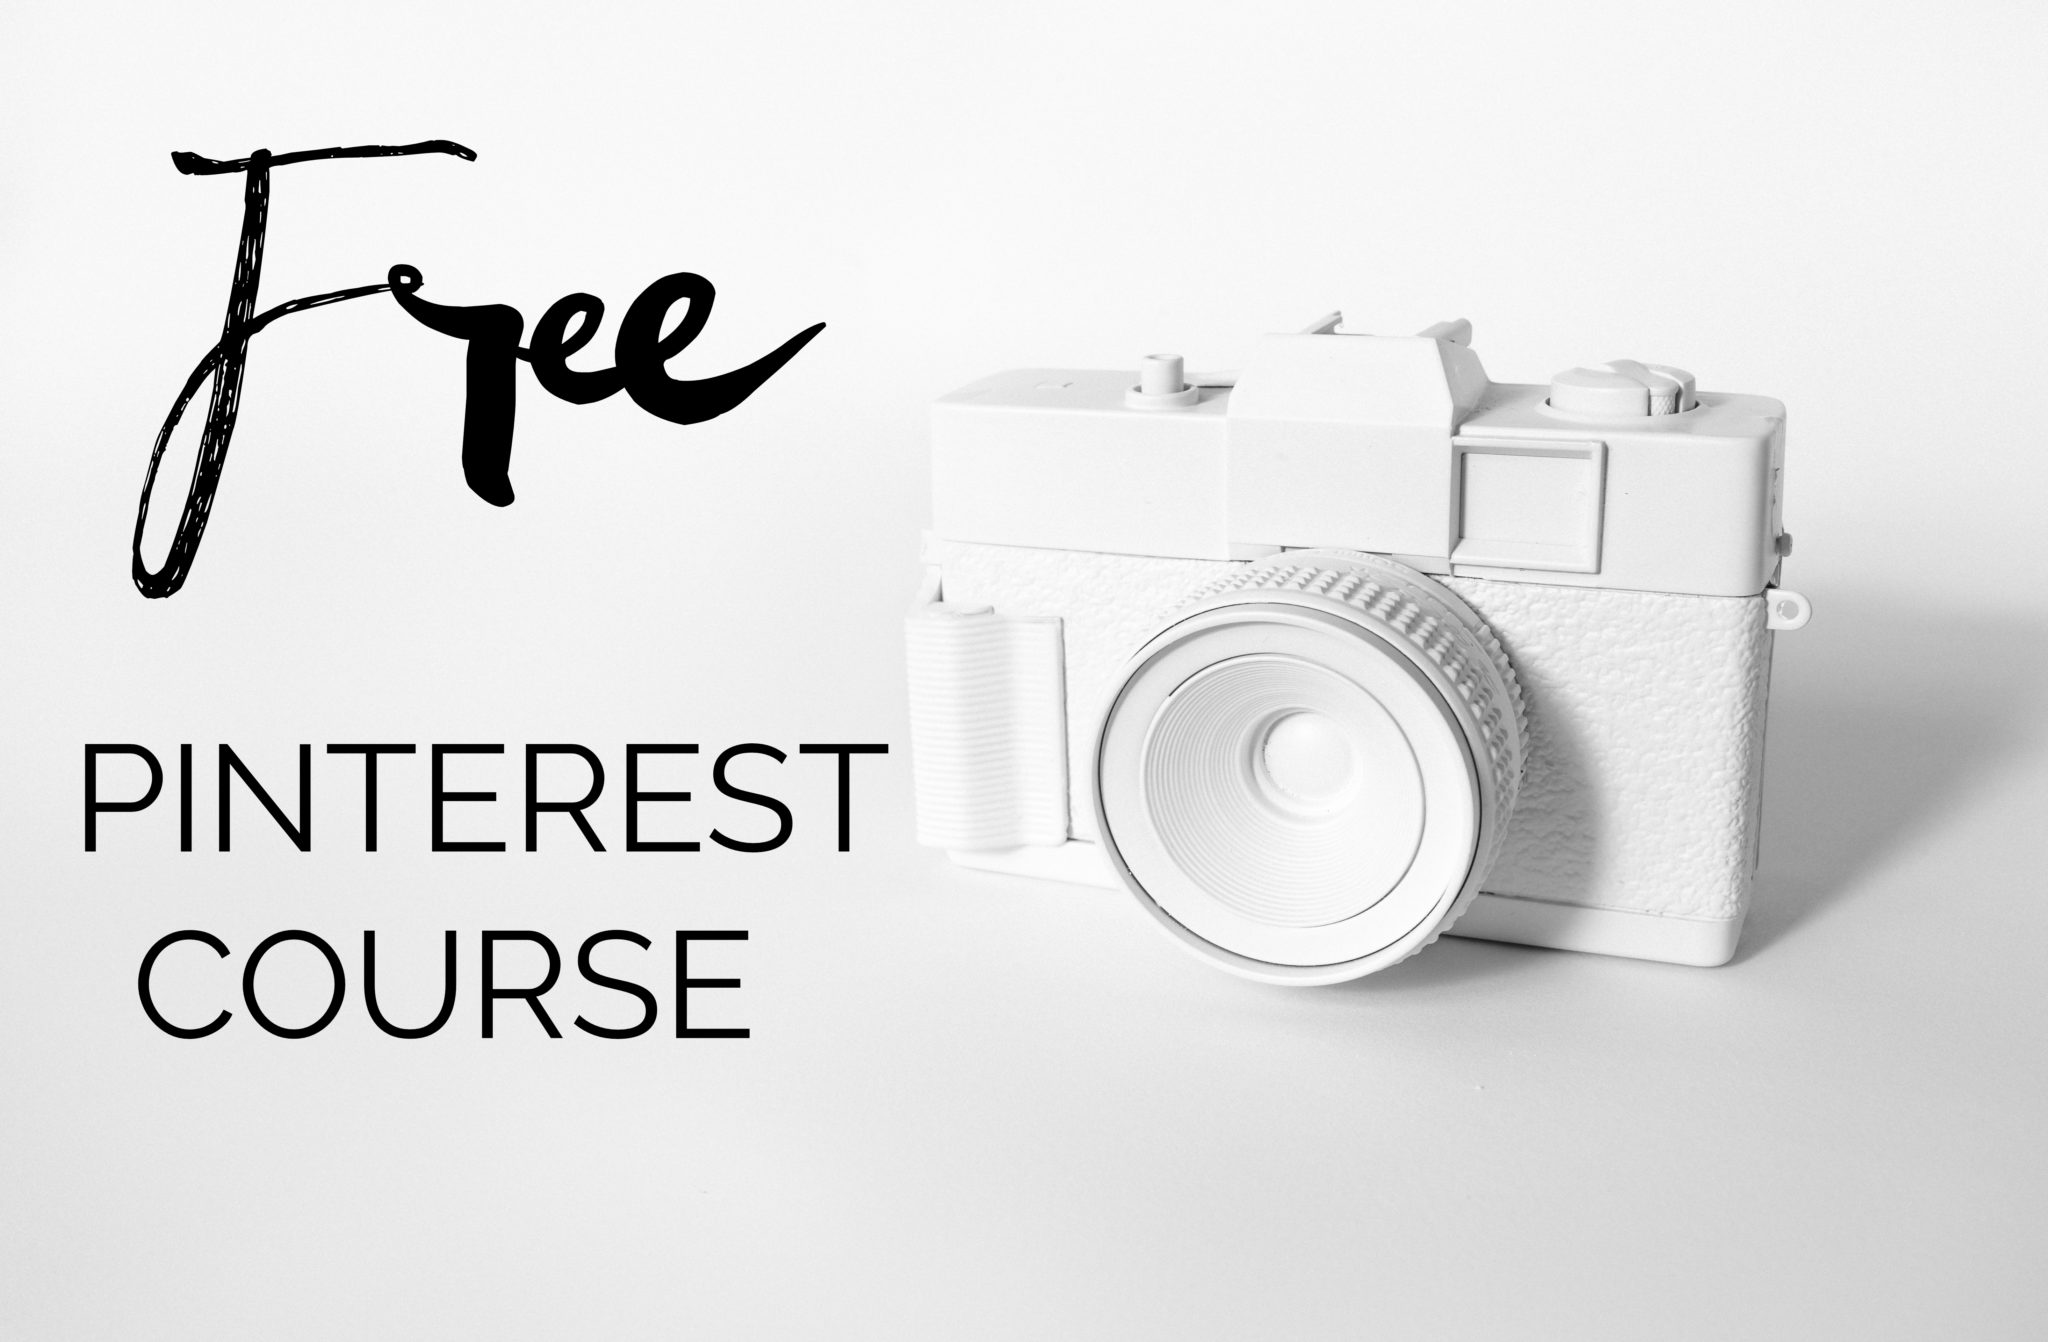 Free Pinterest Course courtesy of www.thecuratecollaborative.com